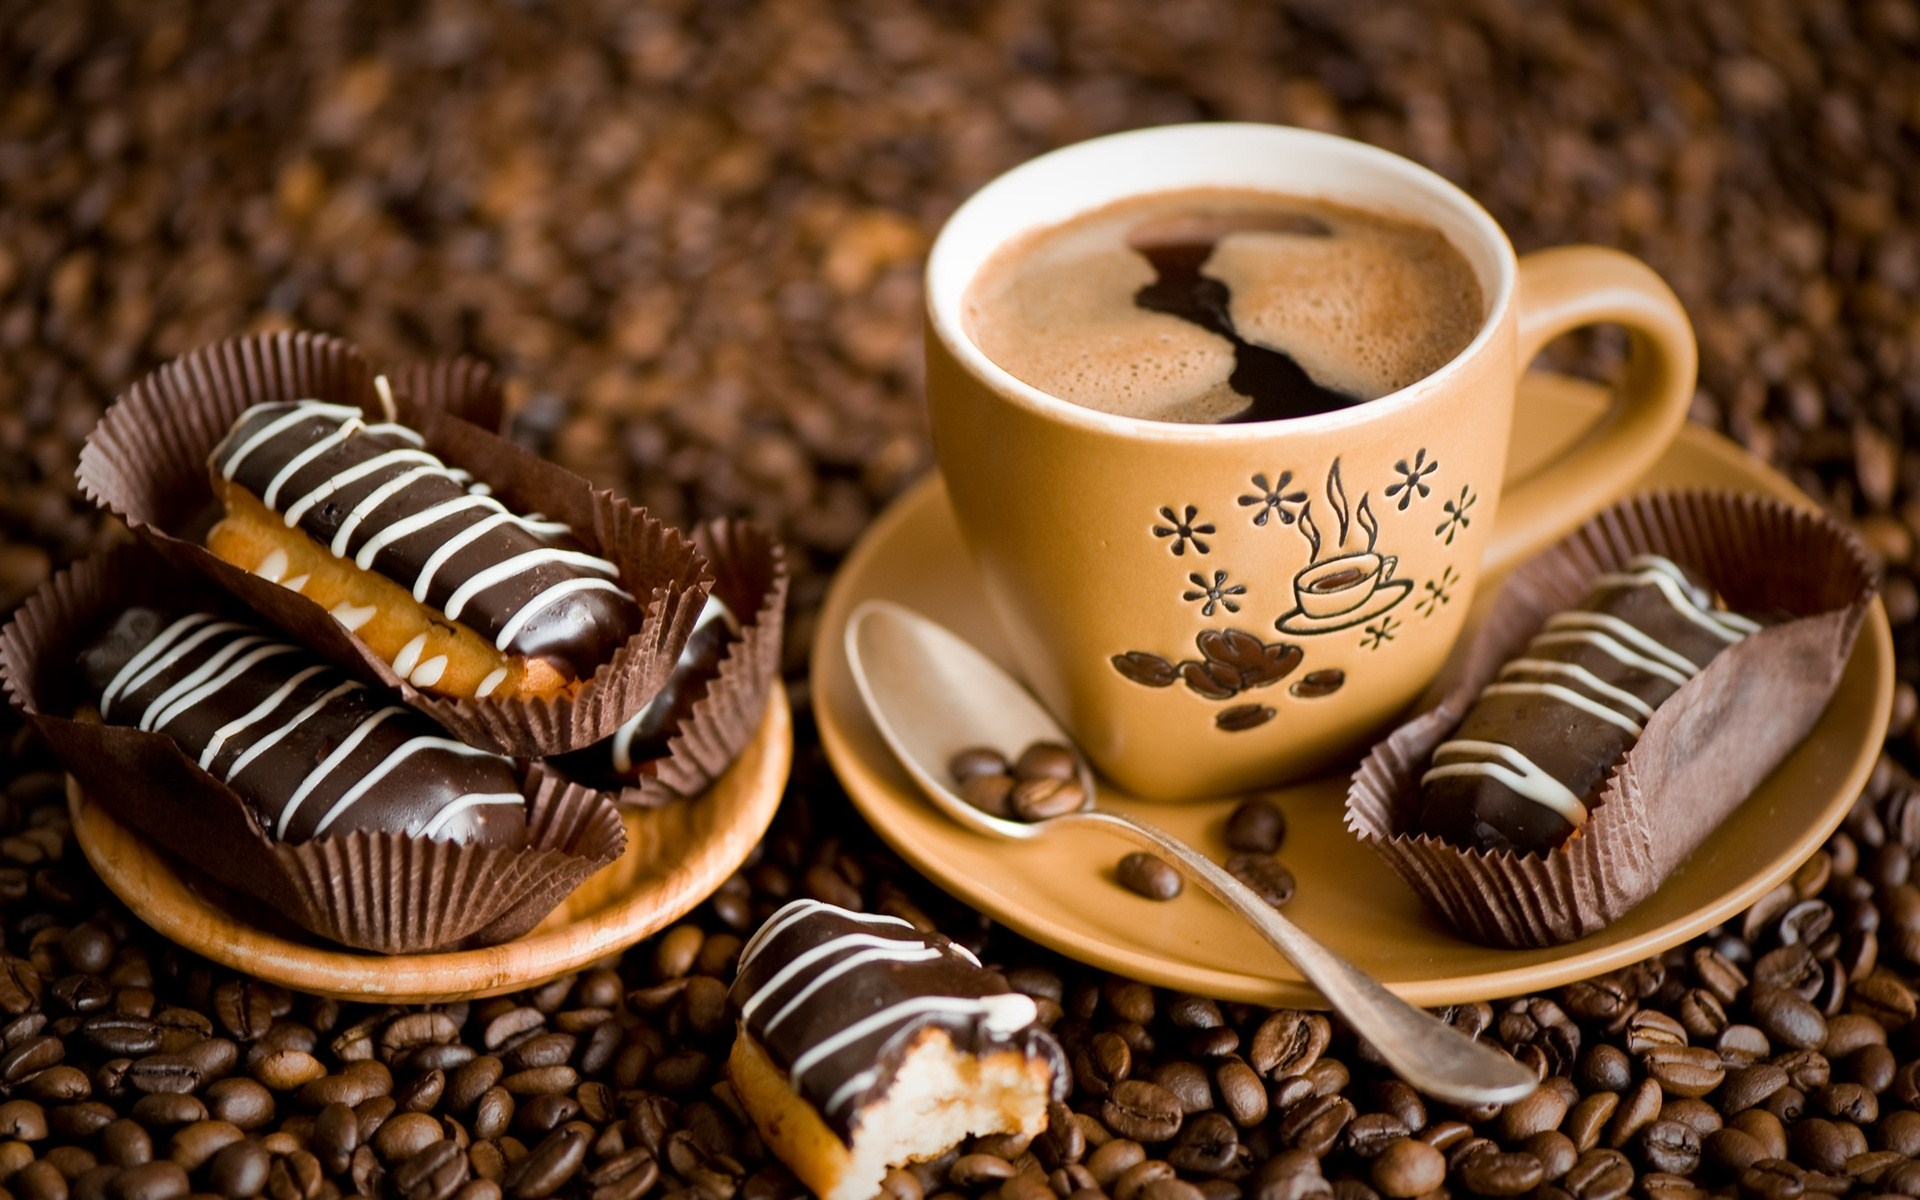 Coffee Lovers Love Hd Wallpapers: 20 Lovely HD Coffee Wallpapers